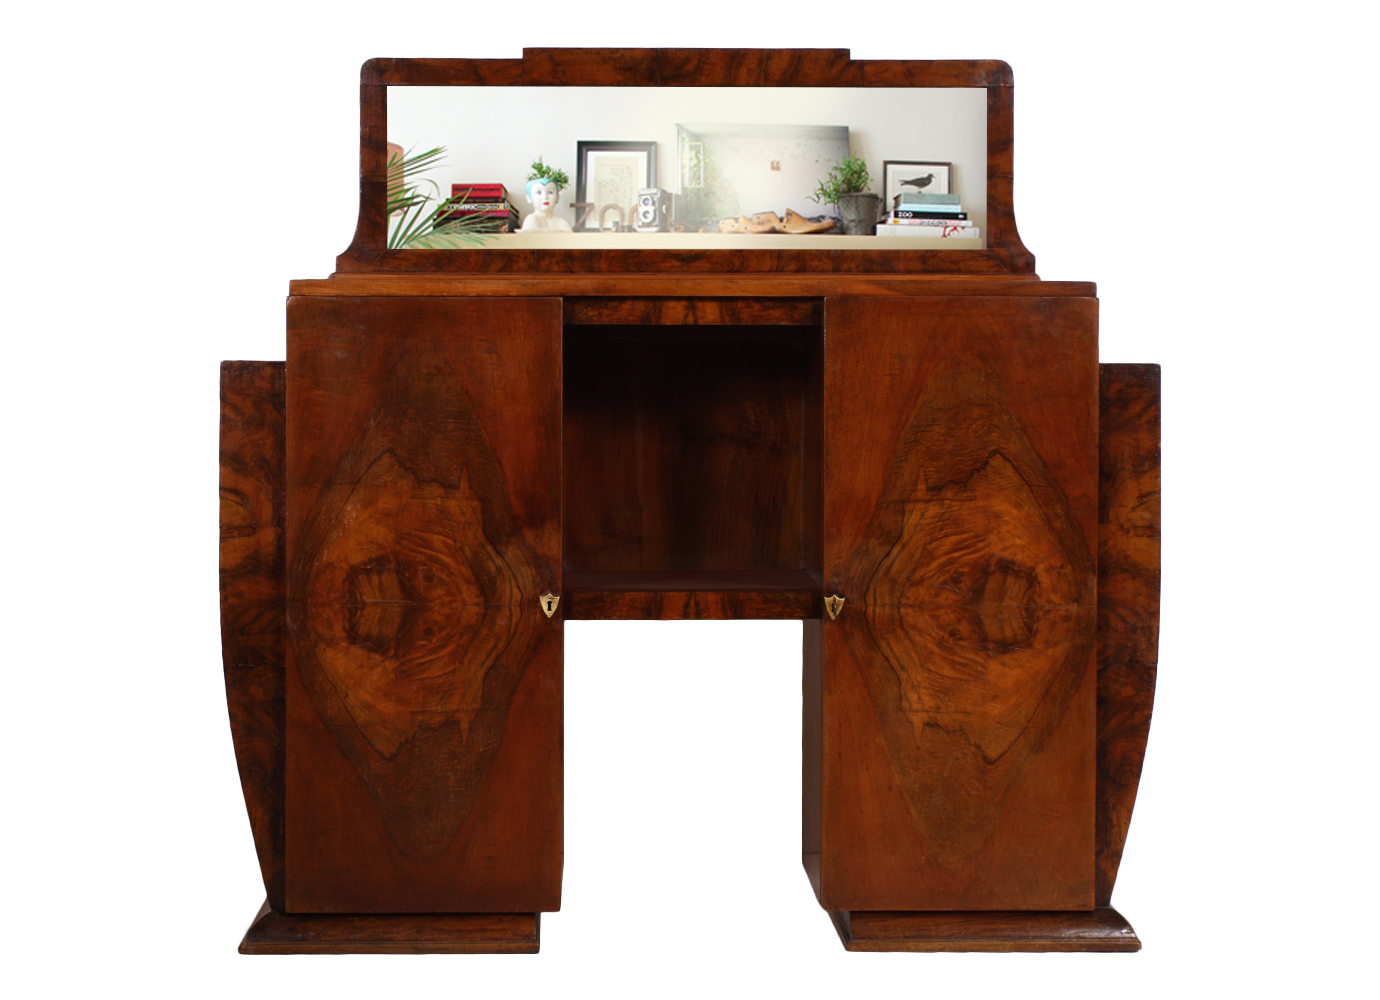 art-deco-sideboard-console-MAP07-1